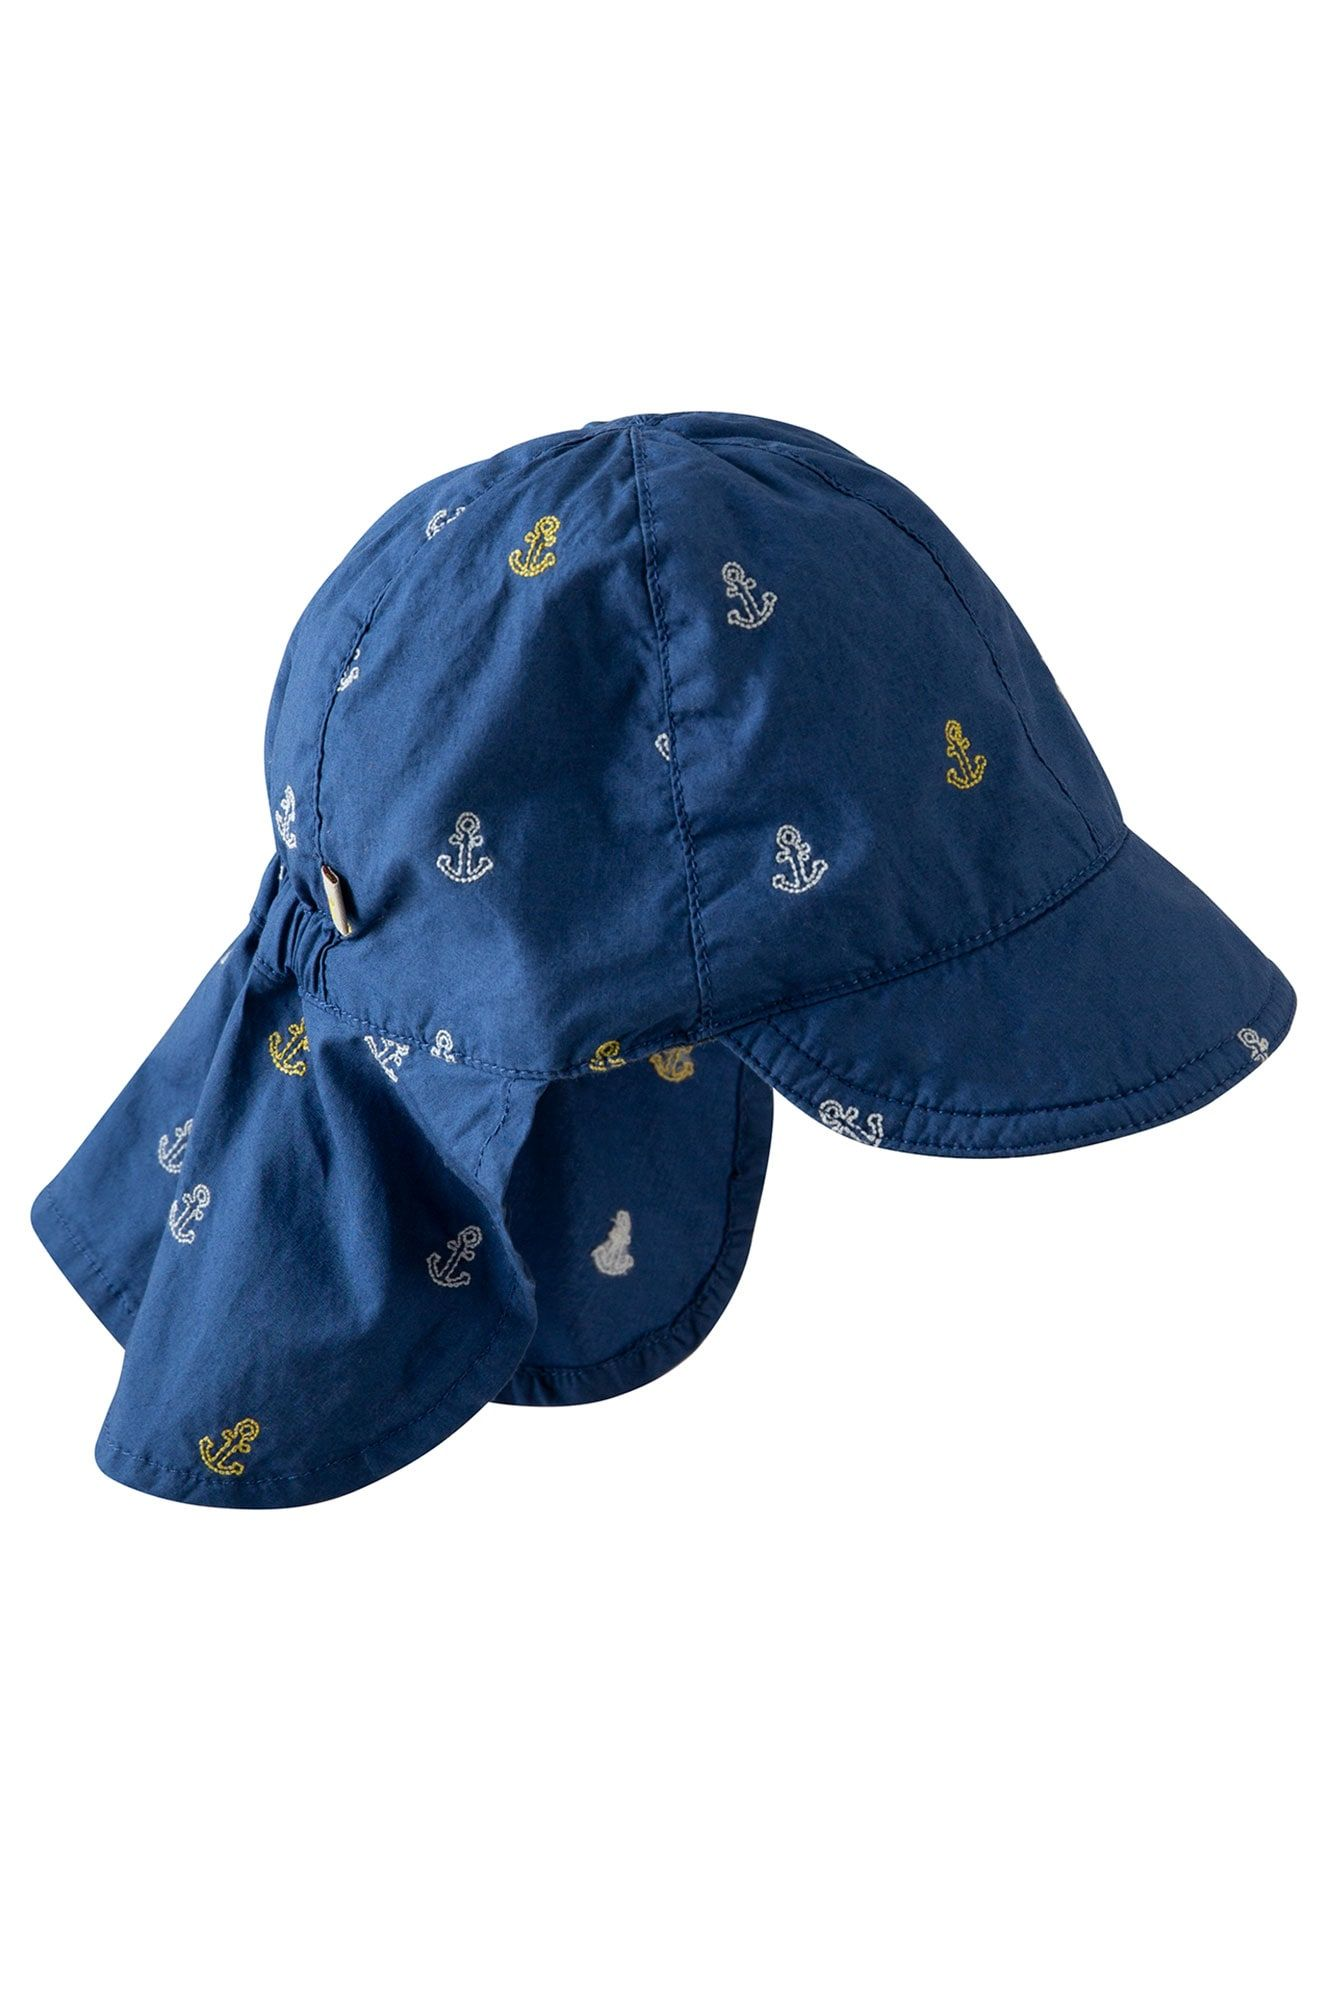 Legionnaires Hat | Anna | Hats, Toddler outfits, Marine blue